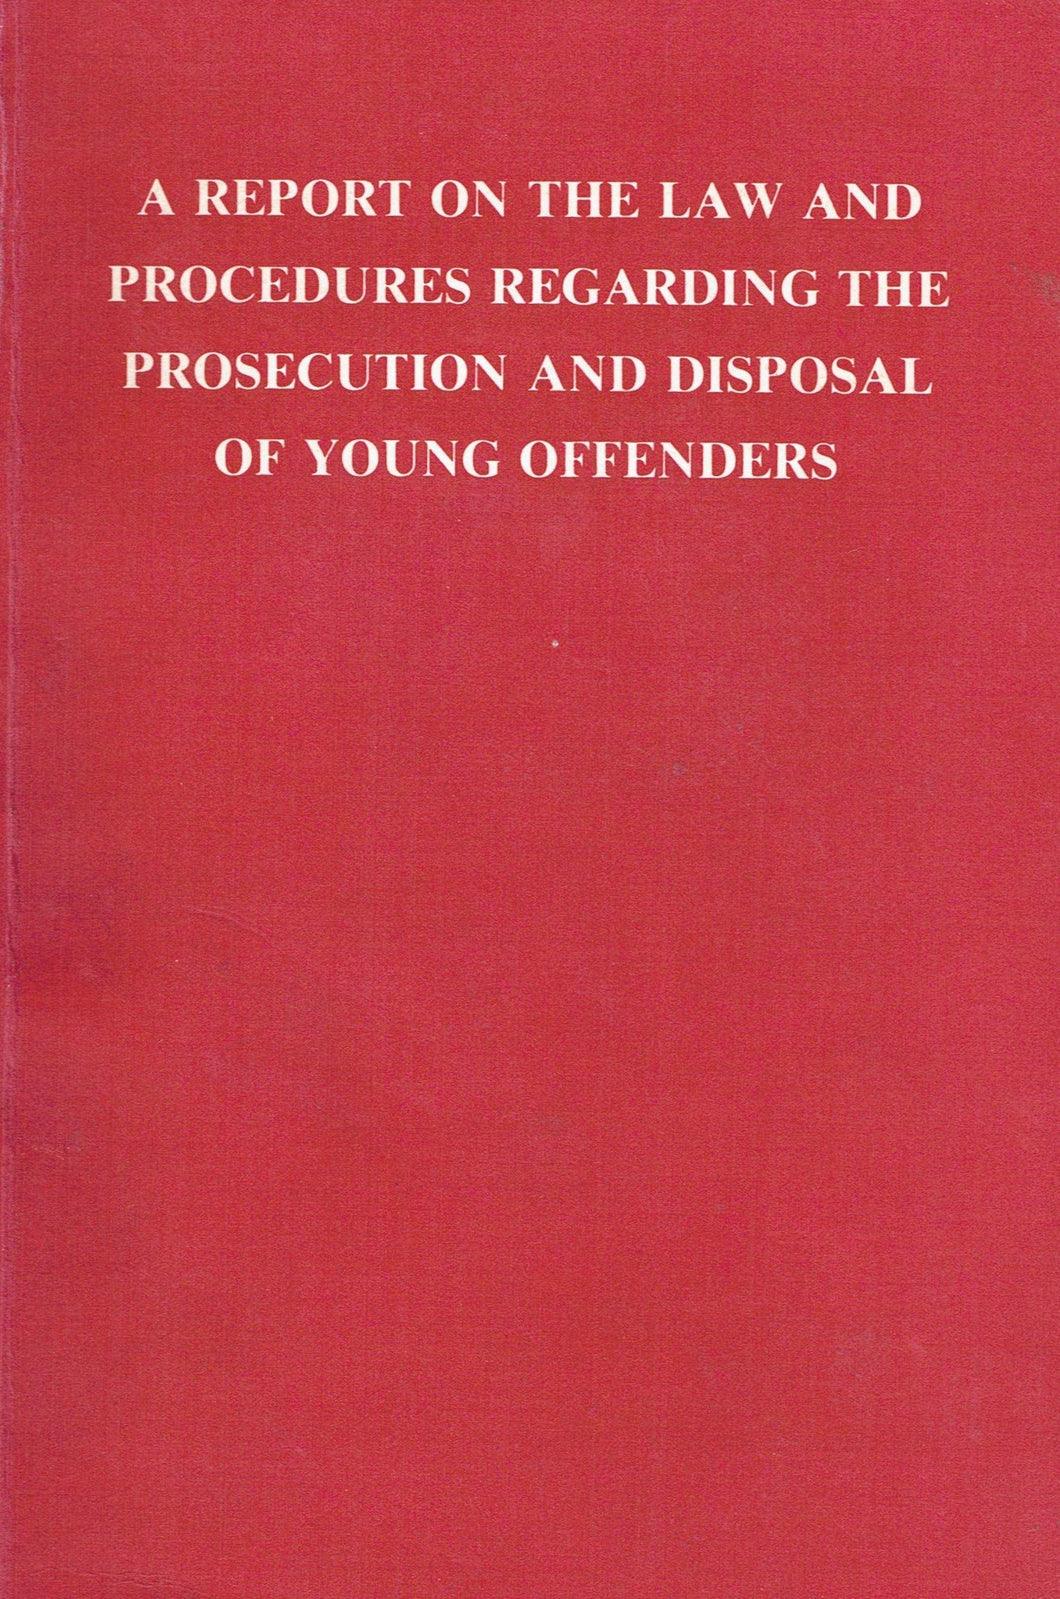 Young offenders: A report on the law and procedures regarding the prosecution and disposal of young offenders